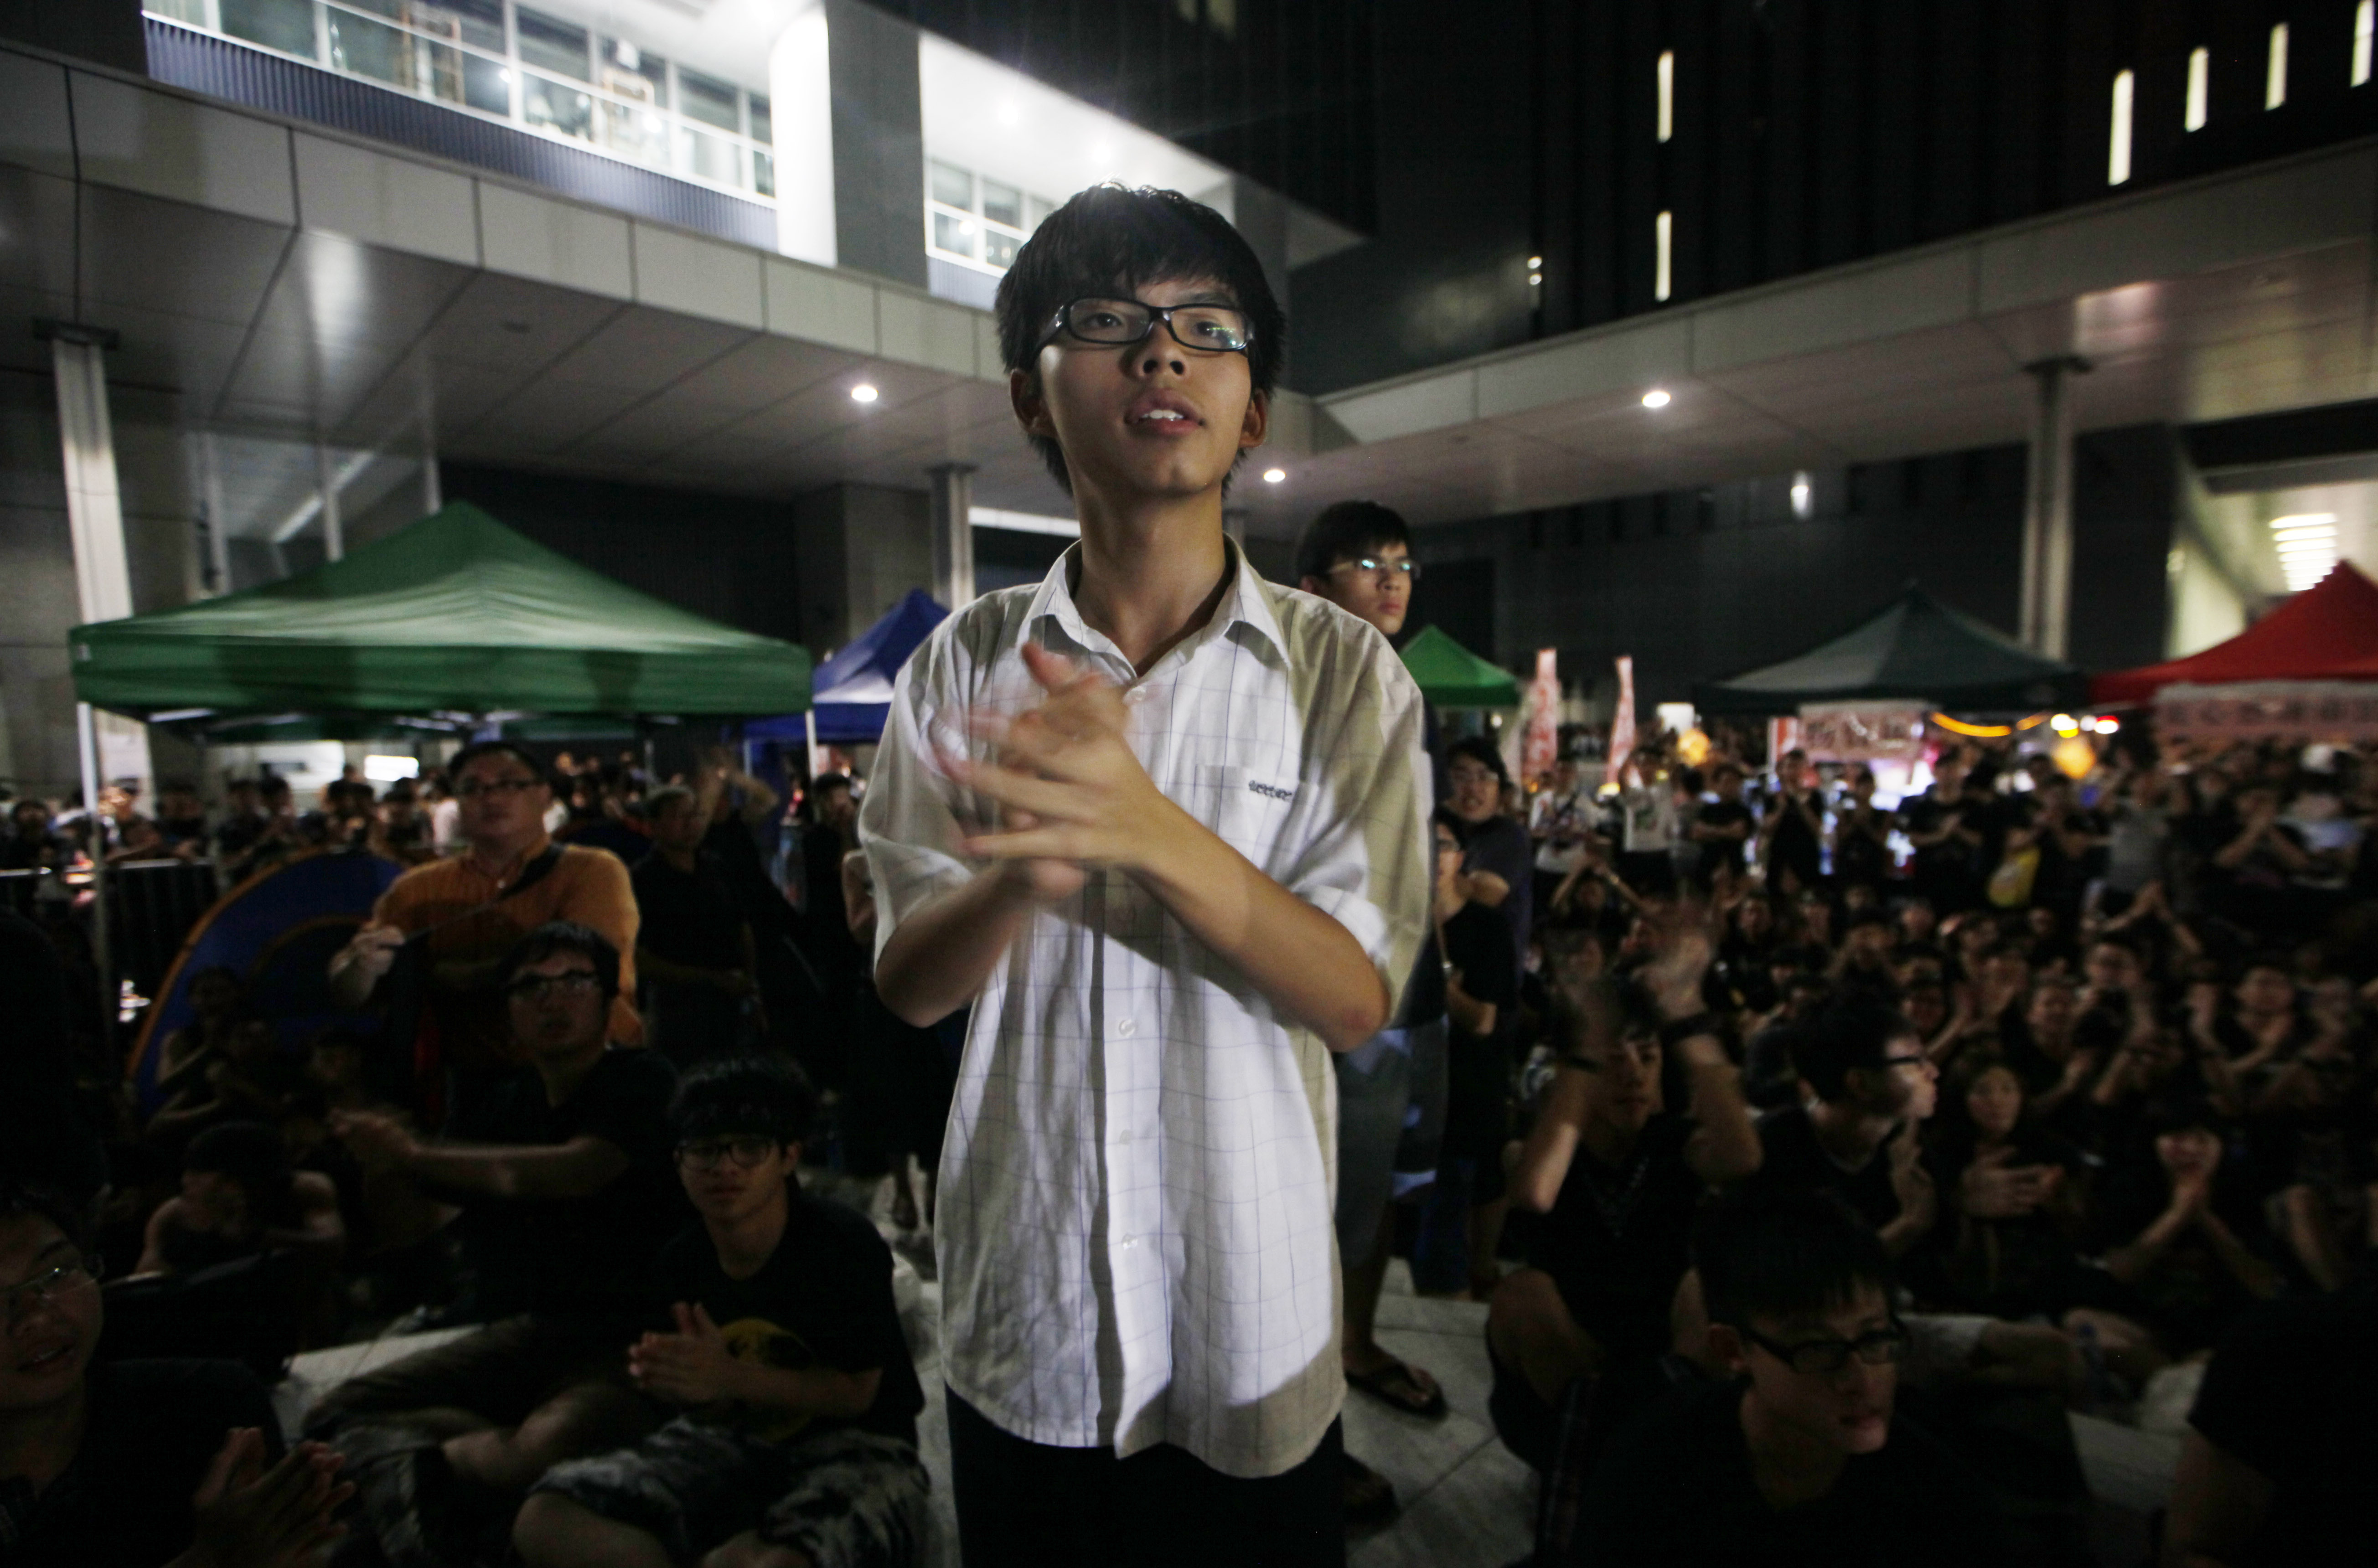 Convener of the students group  Scholarism  Joshua Wong attends a sit-in protest outside the government headquarters in Hong Kong on Sept. 5, 2012.